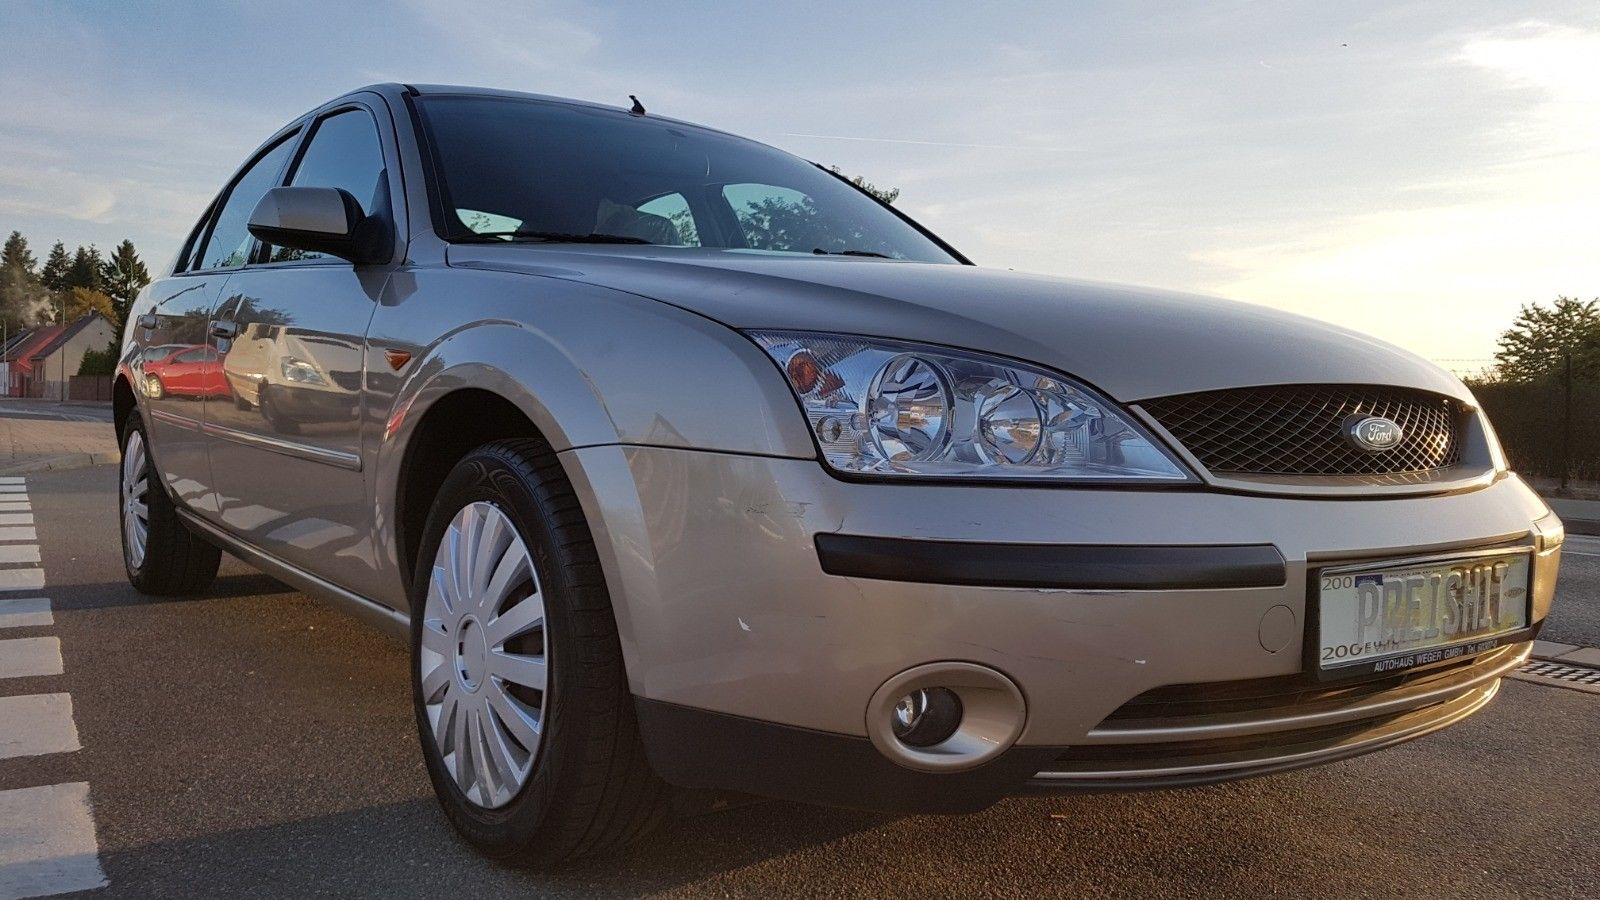 FORD MONDEO 1.8 5-türig (neues Modell) TÜV 5/2020